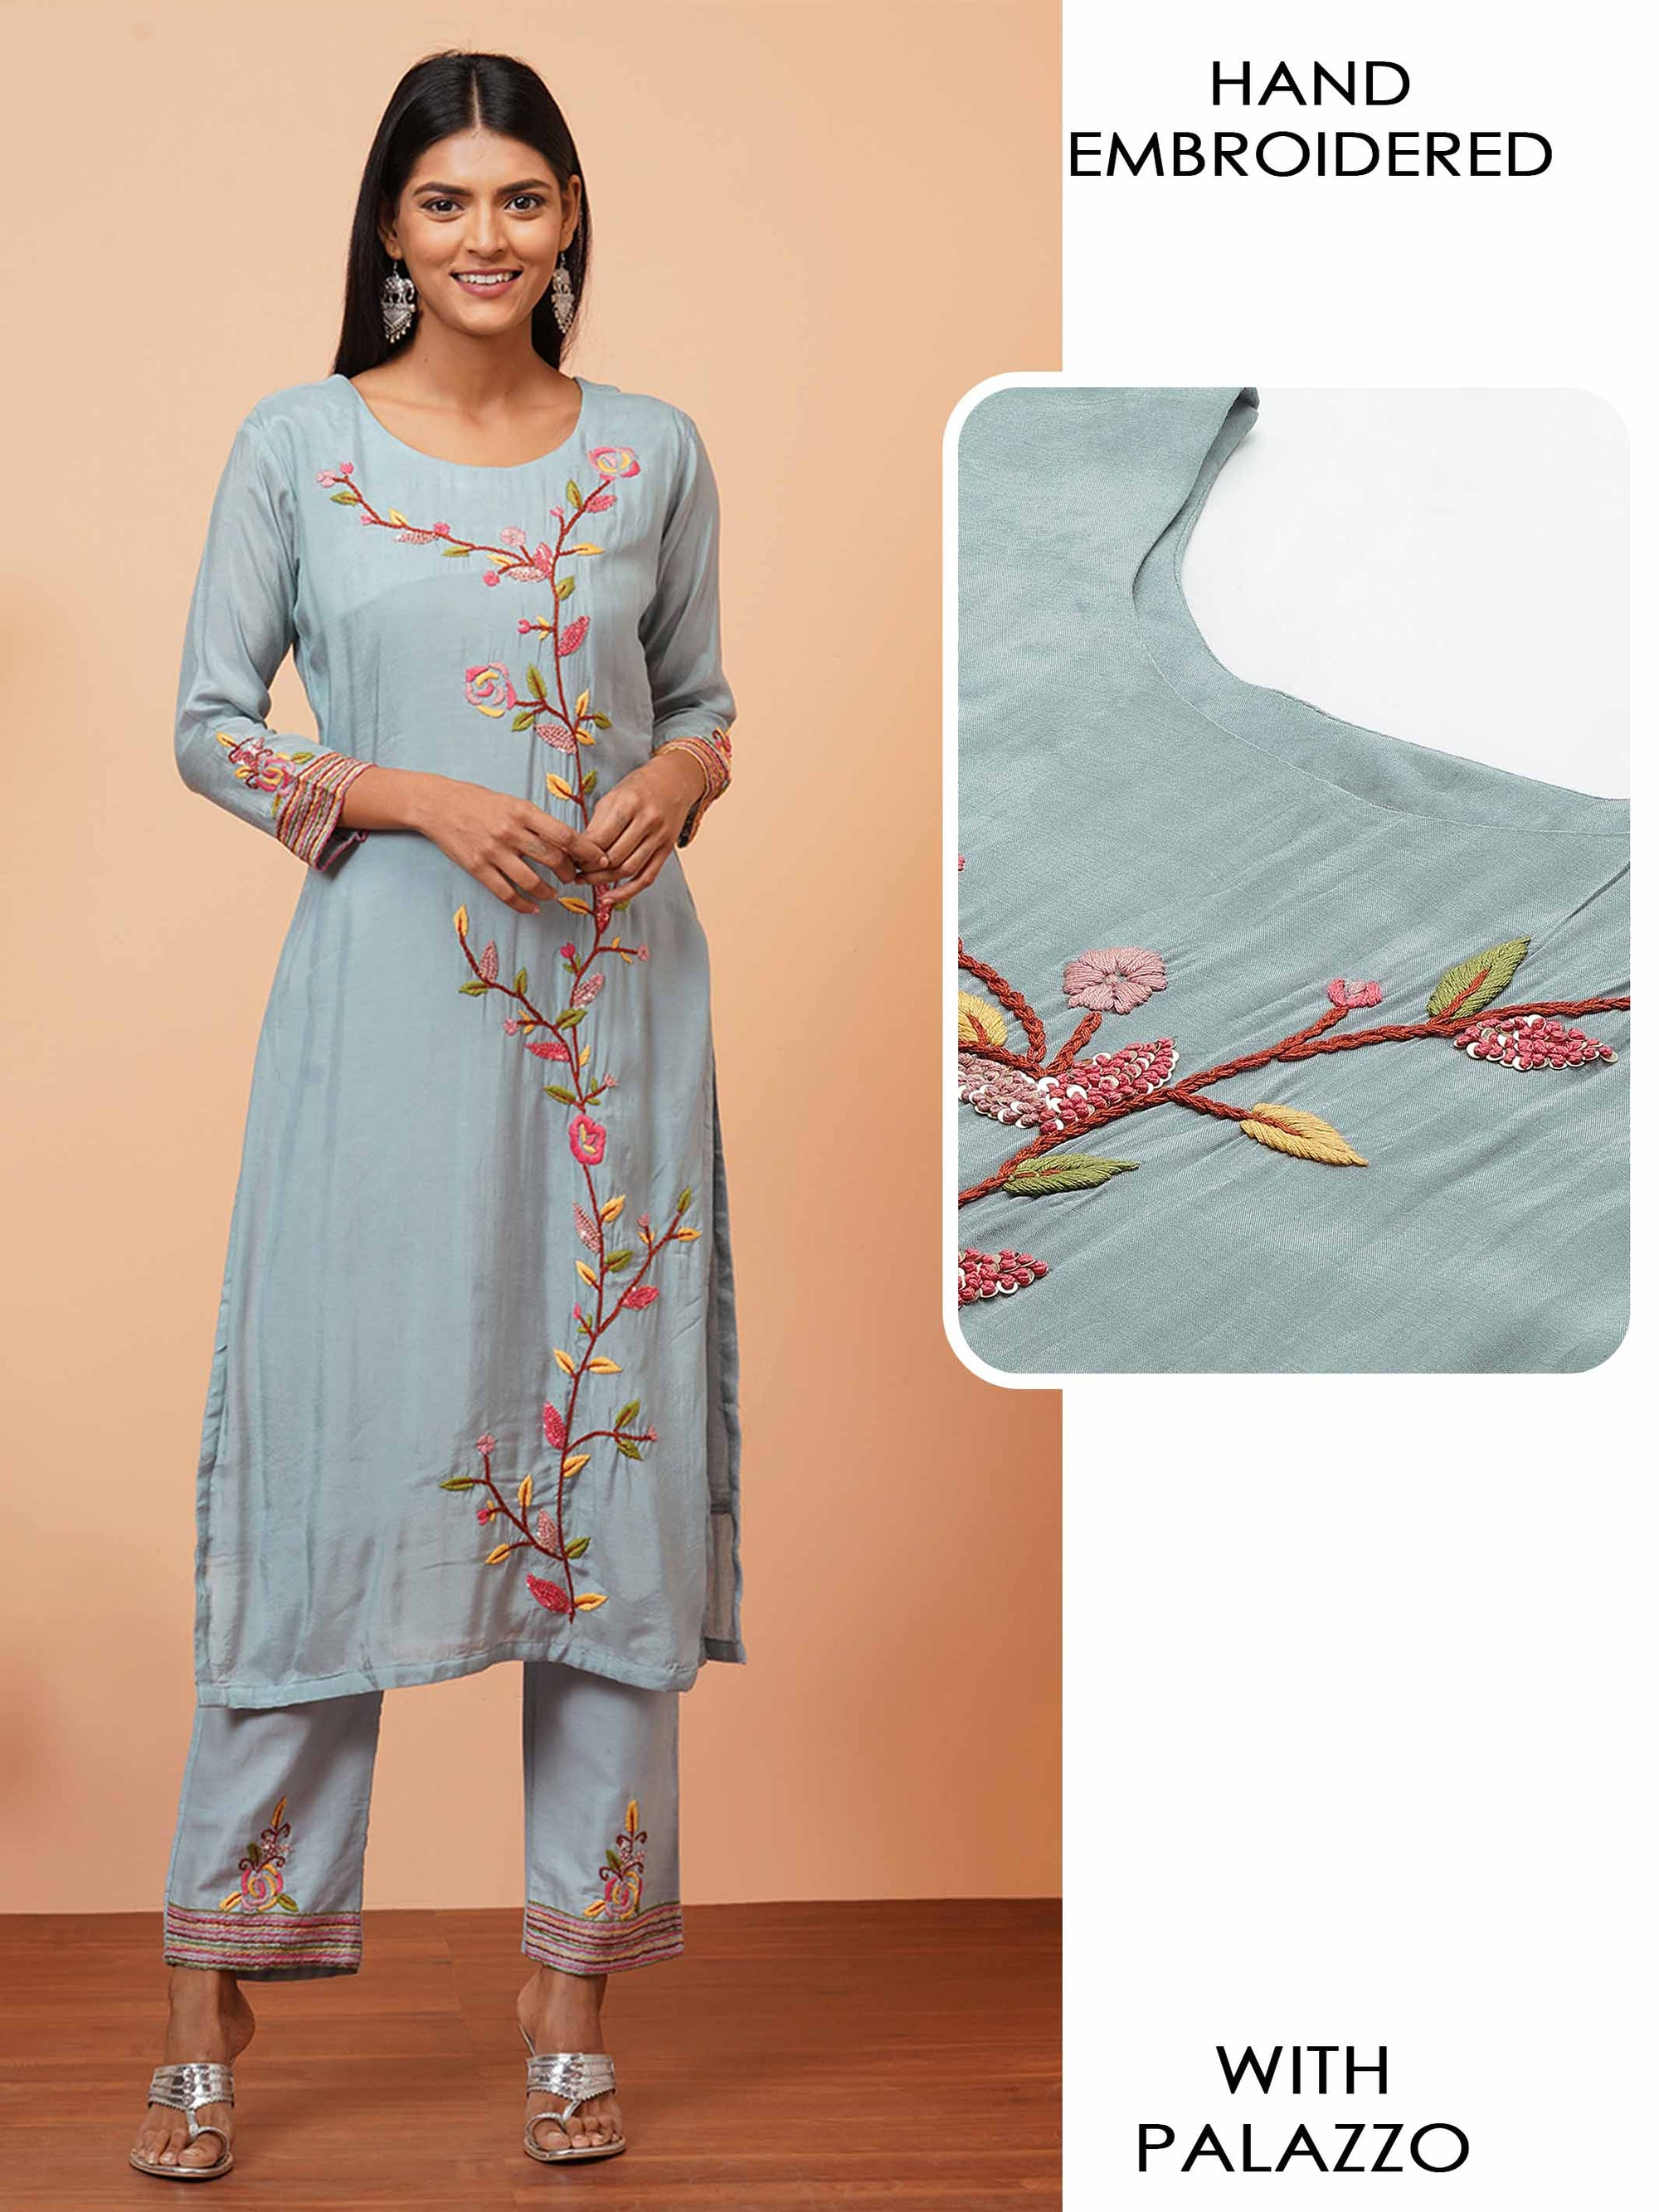 Floral Hand Embroidered Kurta with Hand Embroidered Palazzo - Powder blue